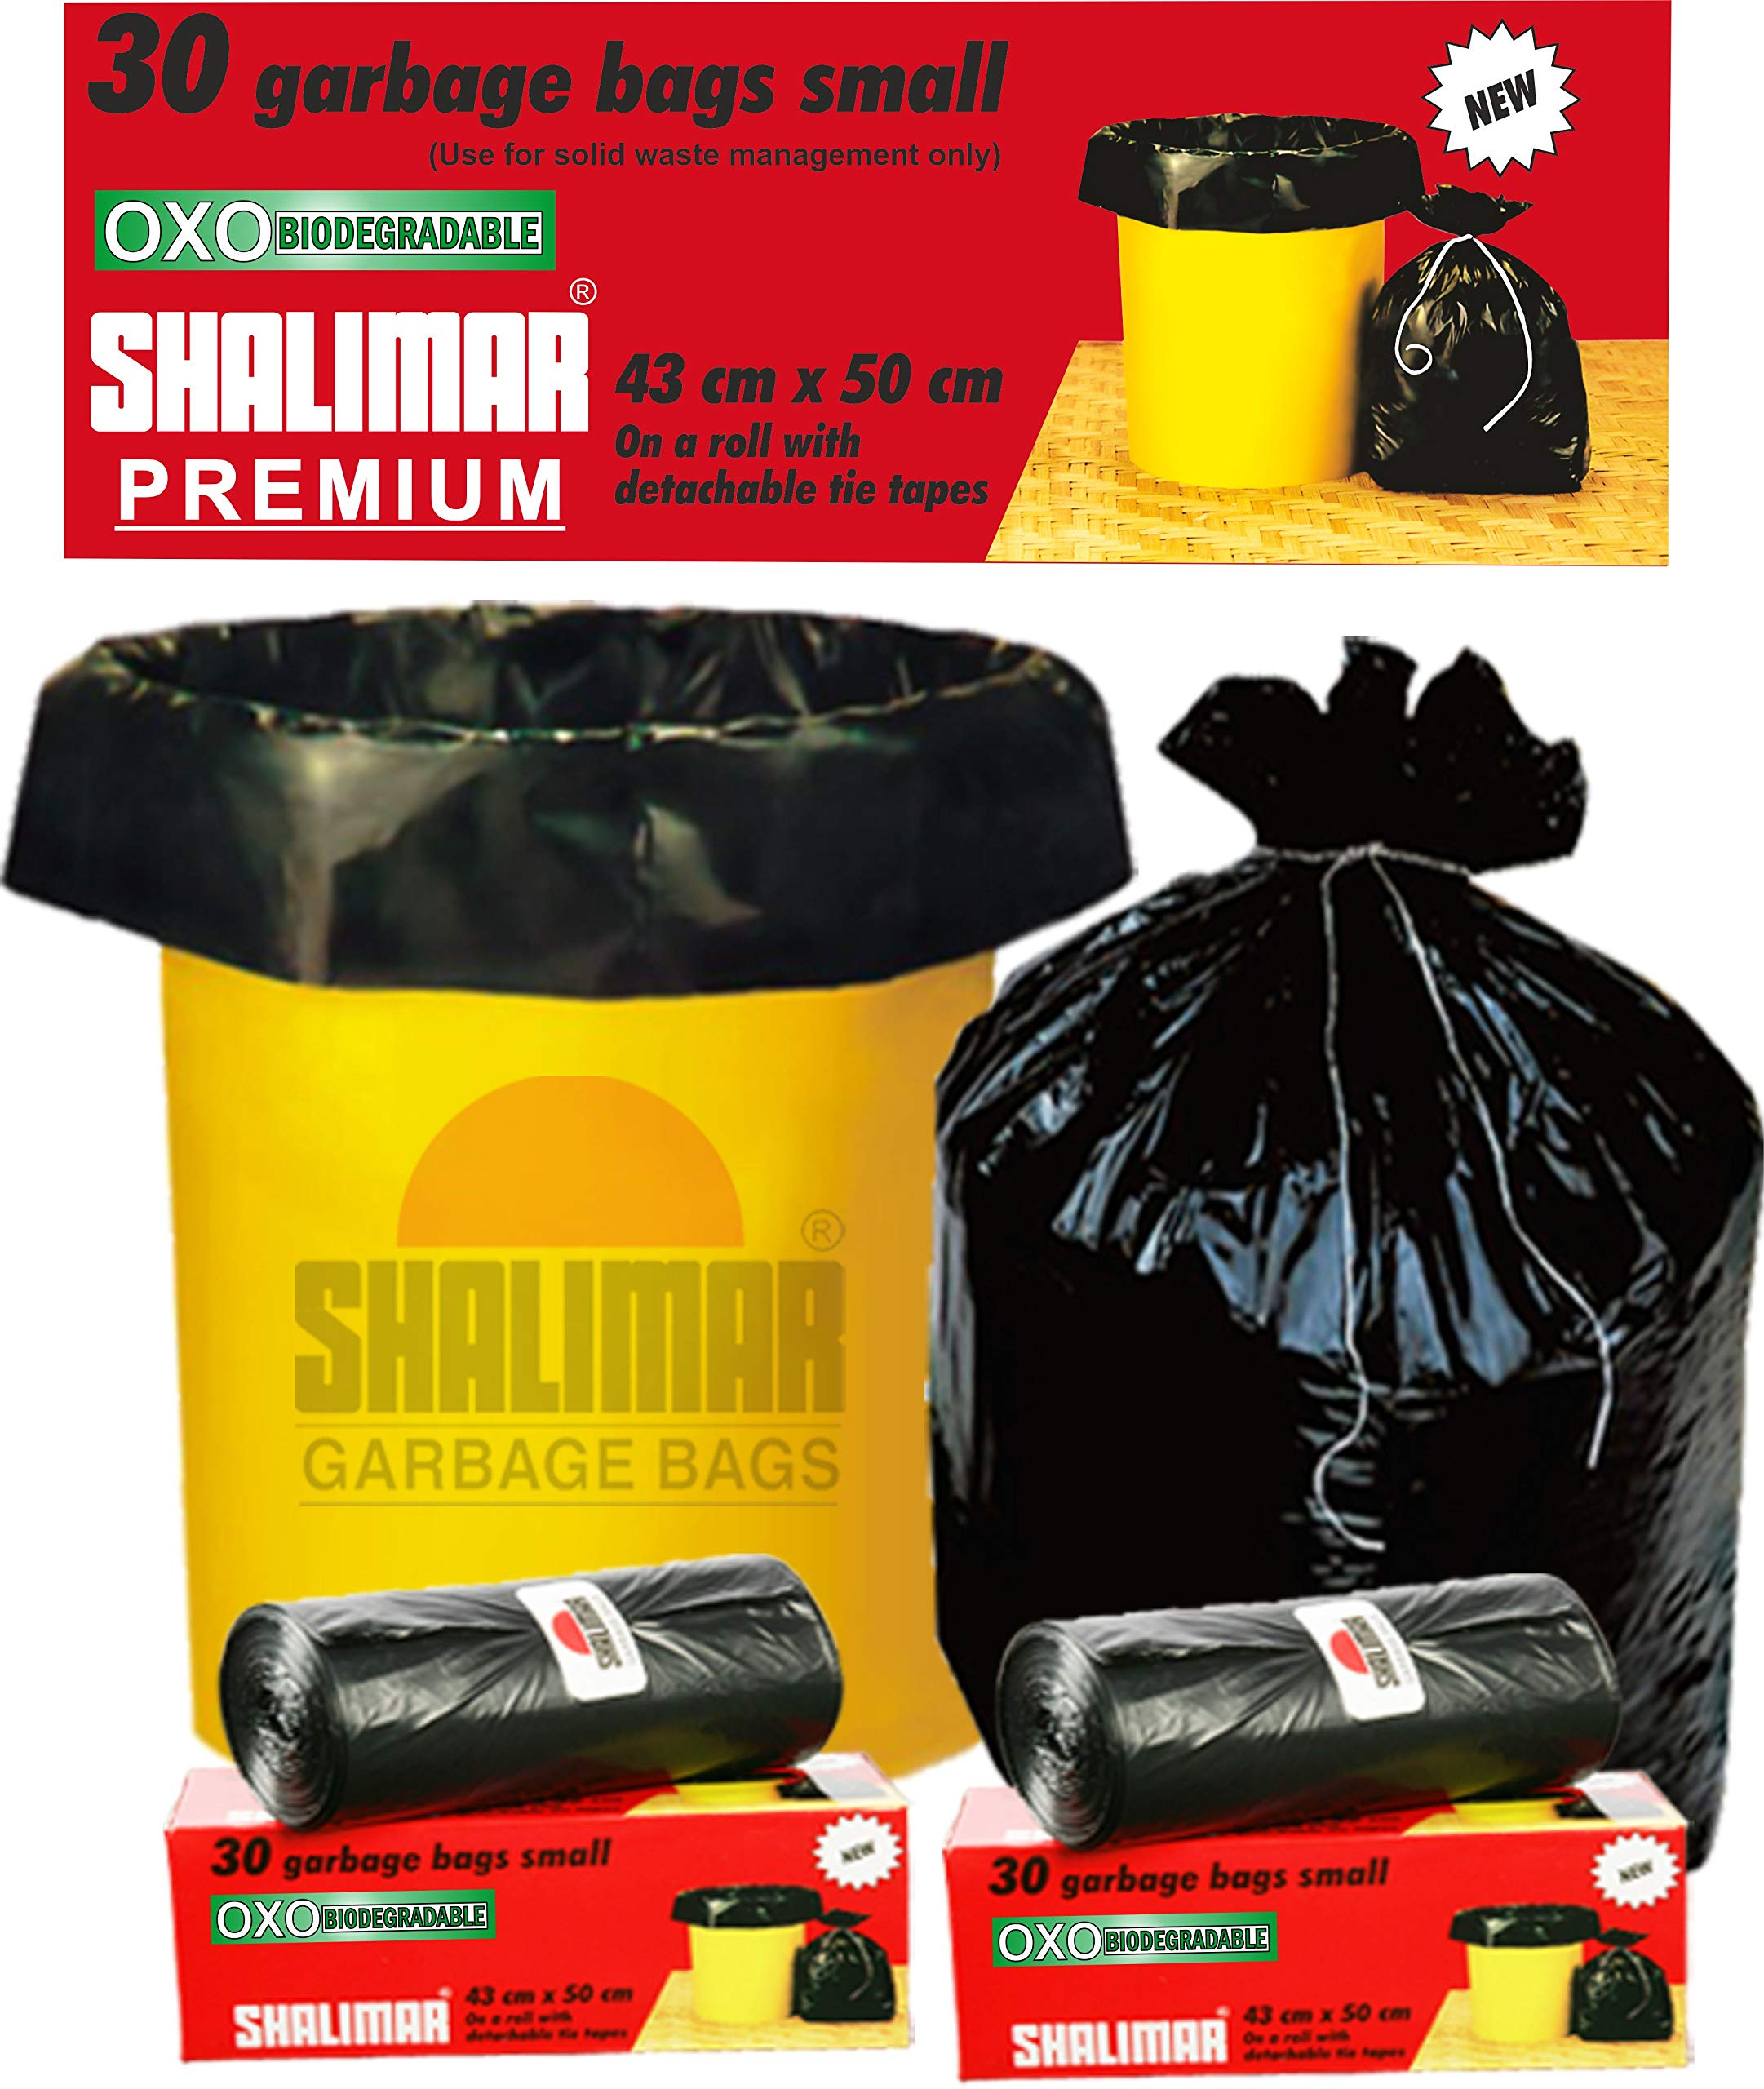 Shalimar Premium OXO - Biodegradable Garbage Bags (Small) Size 43 cm x 51 cm 6 Rolls (180 Bags) ( Black Colour ) product image